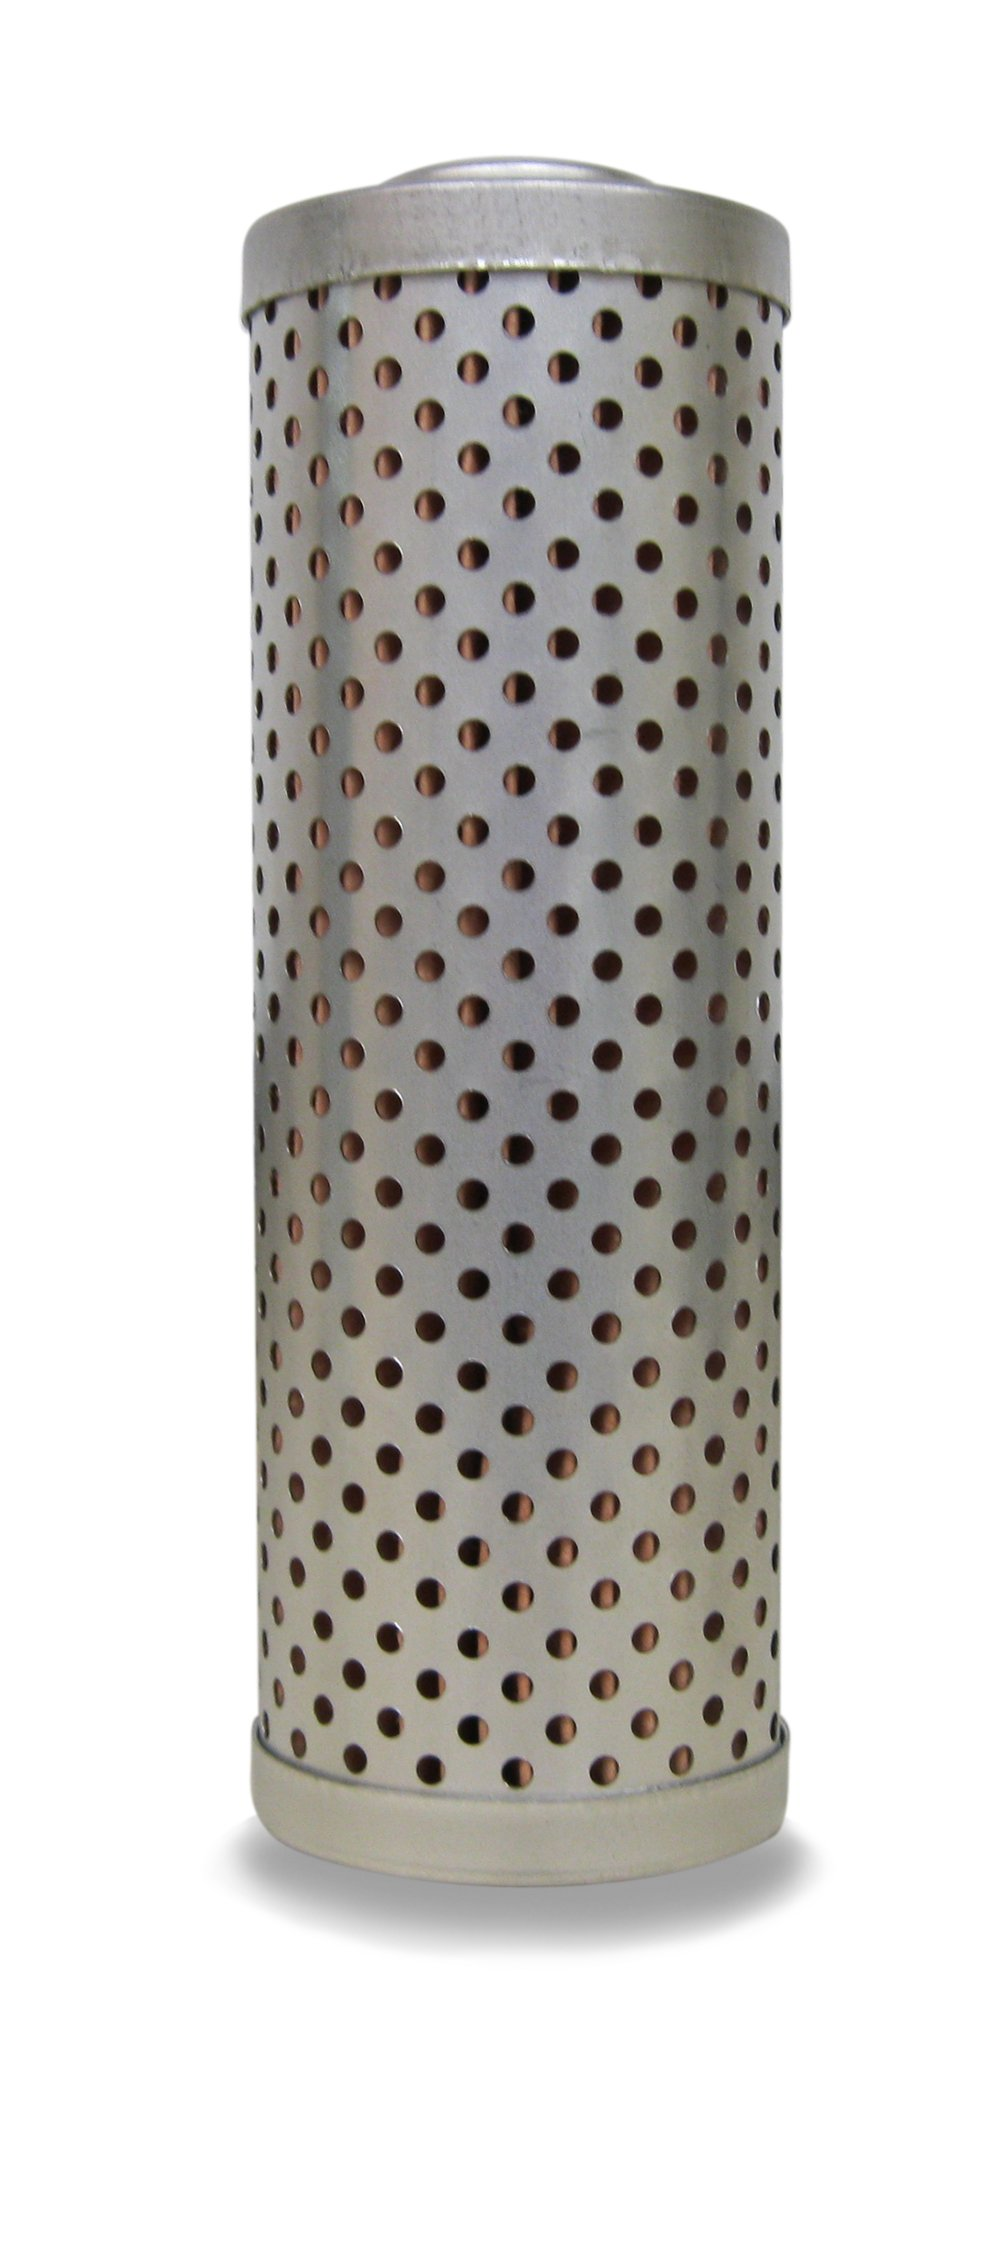 Schroeder N10 Hydraulic Filter Cartridge for NF30, E-Media, Cellulose, Removes Rust, Metallic Debris, Fibers, Dirt; 5.25'' Height, 1.75'' OD, 0.8'' ID, 10 Micron